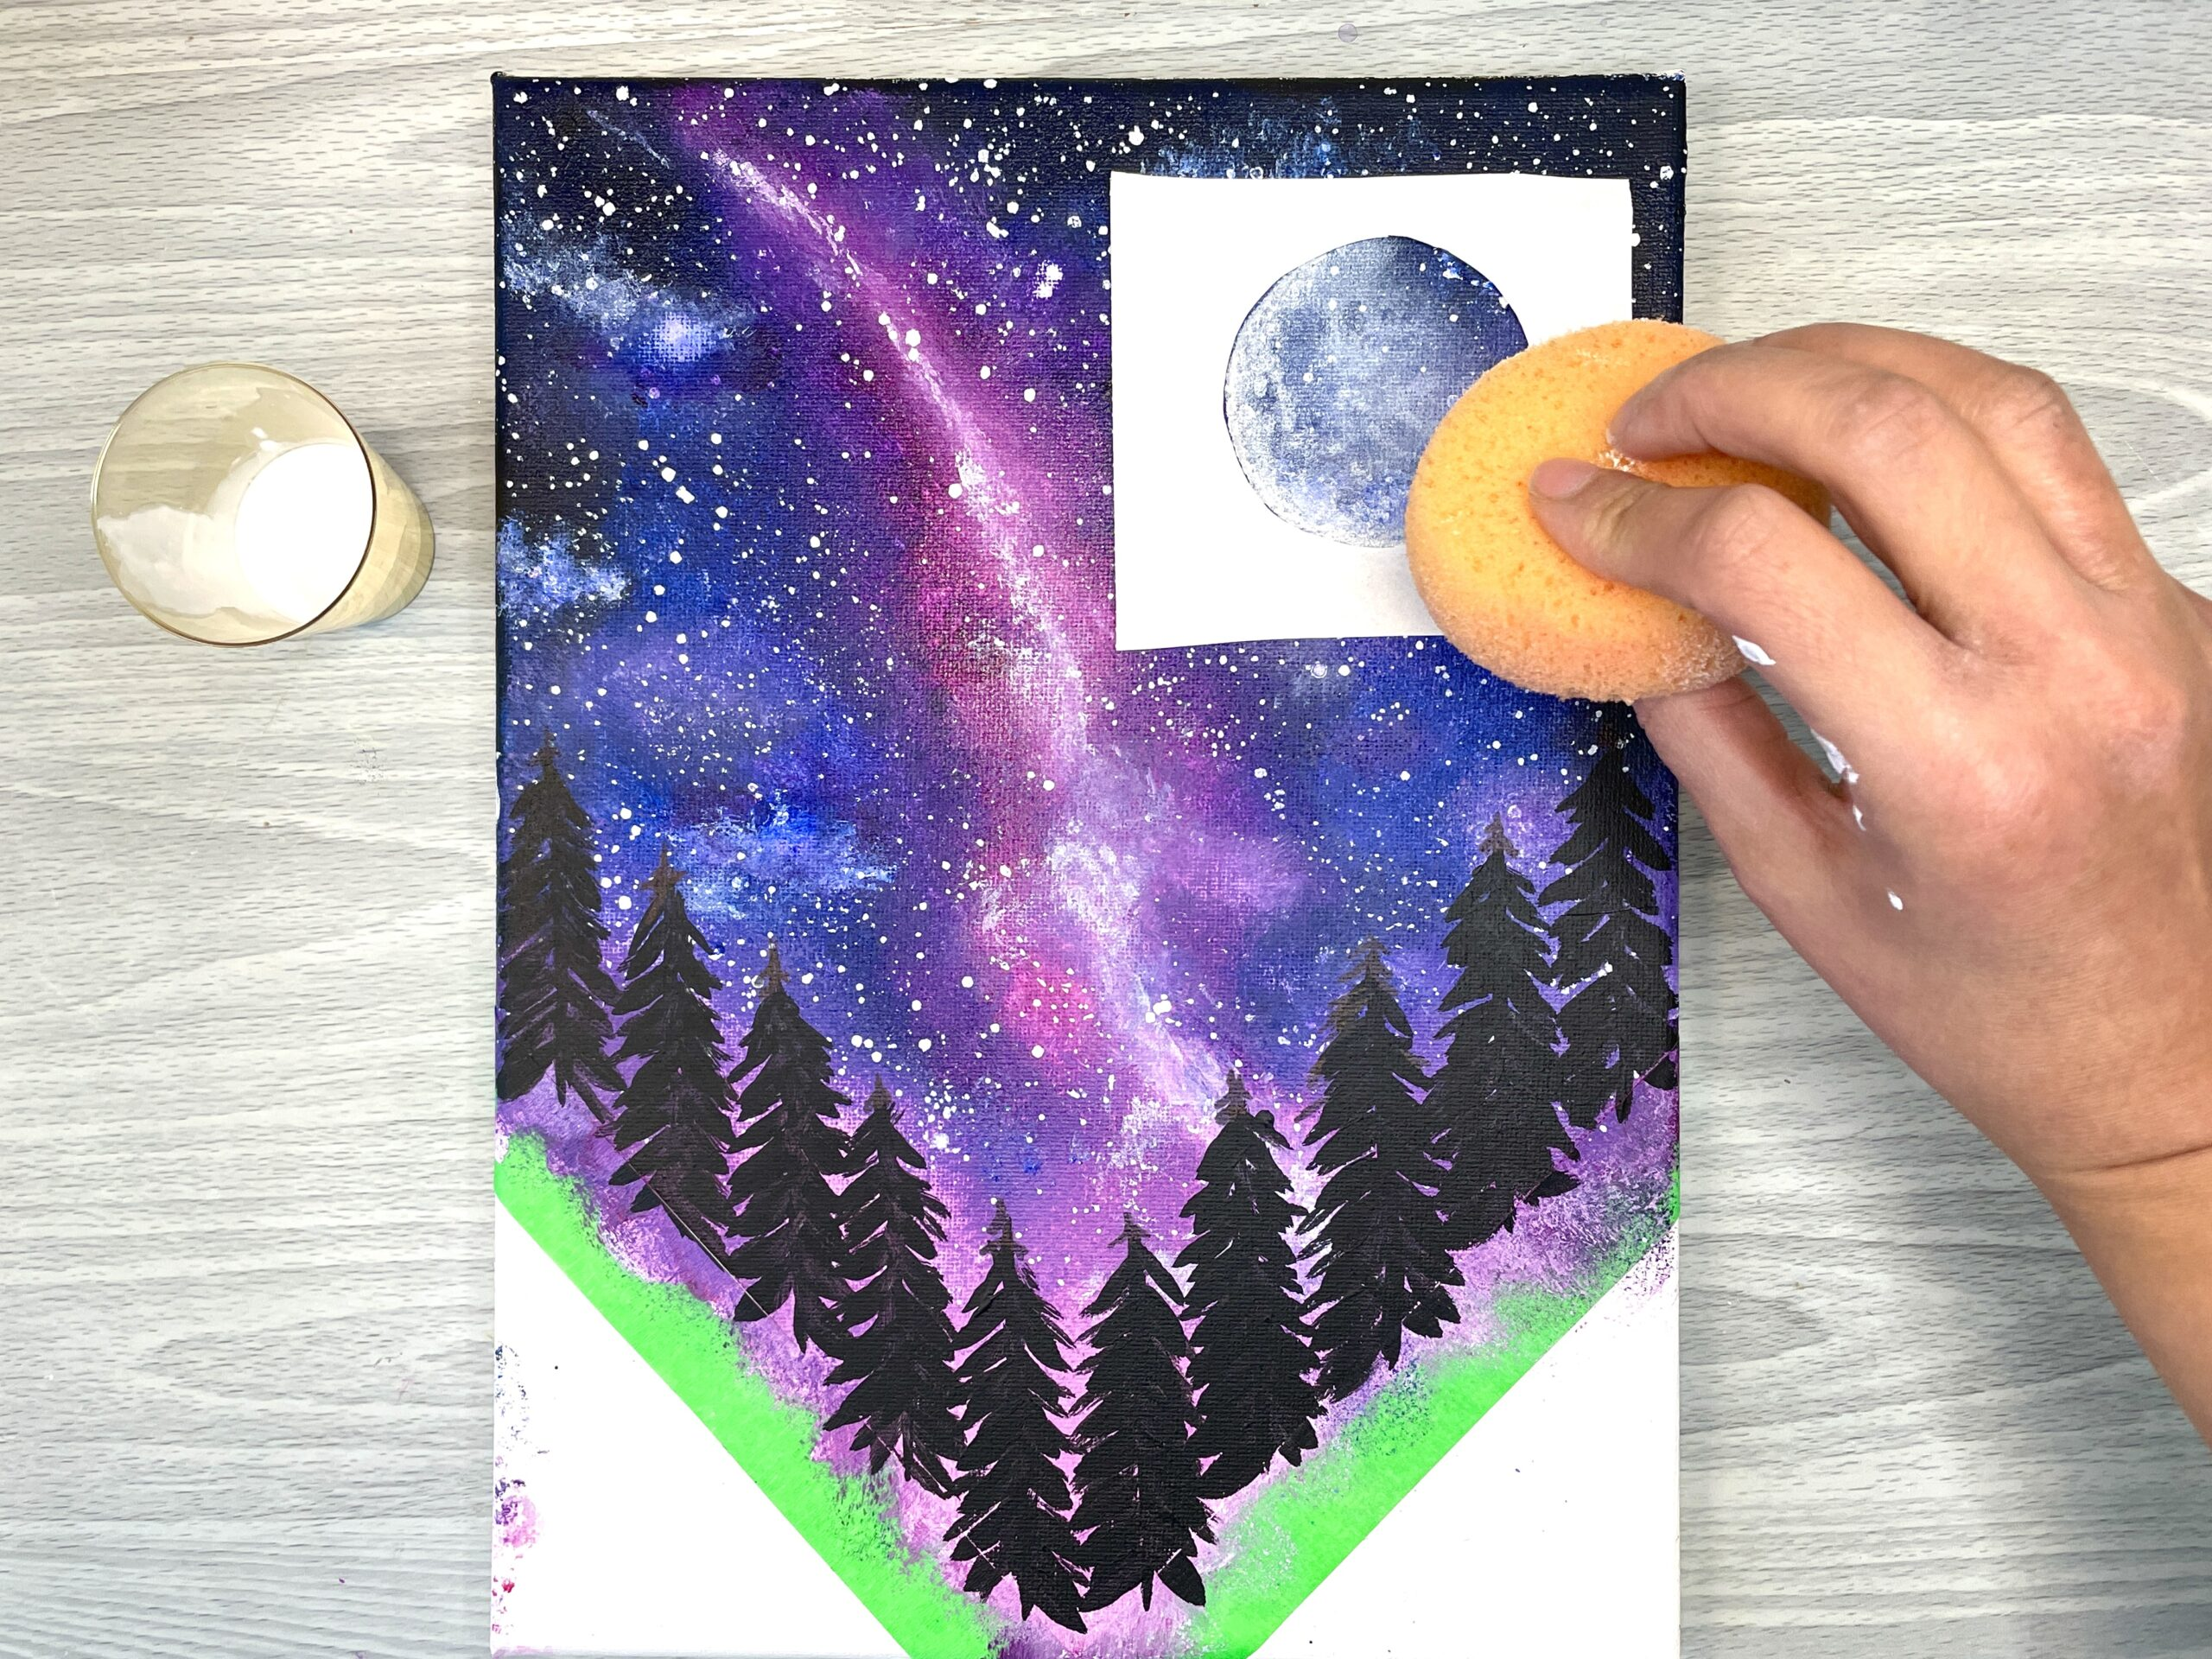 how to paint galaxy scene with trees